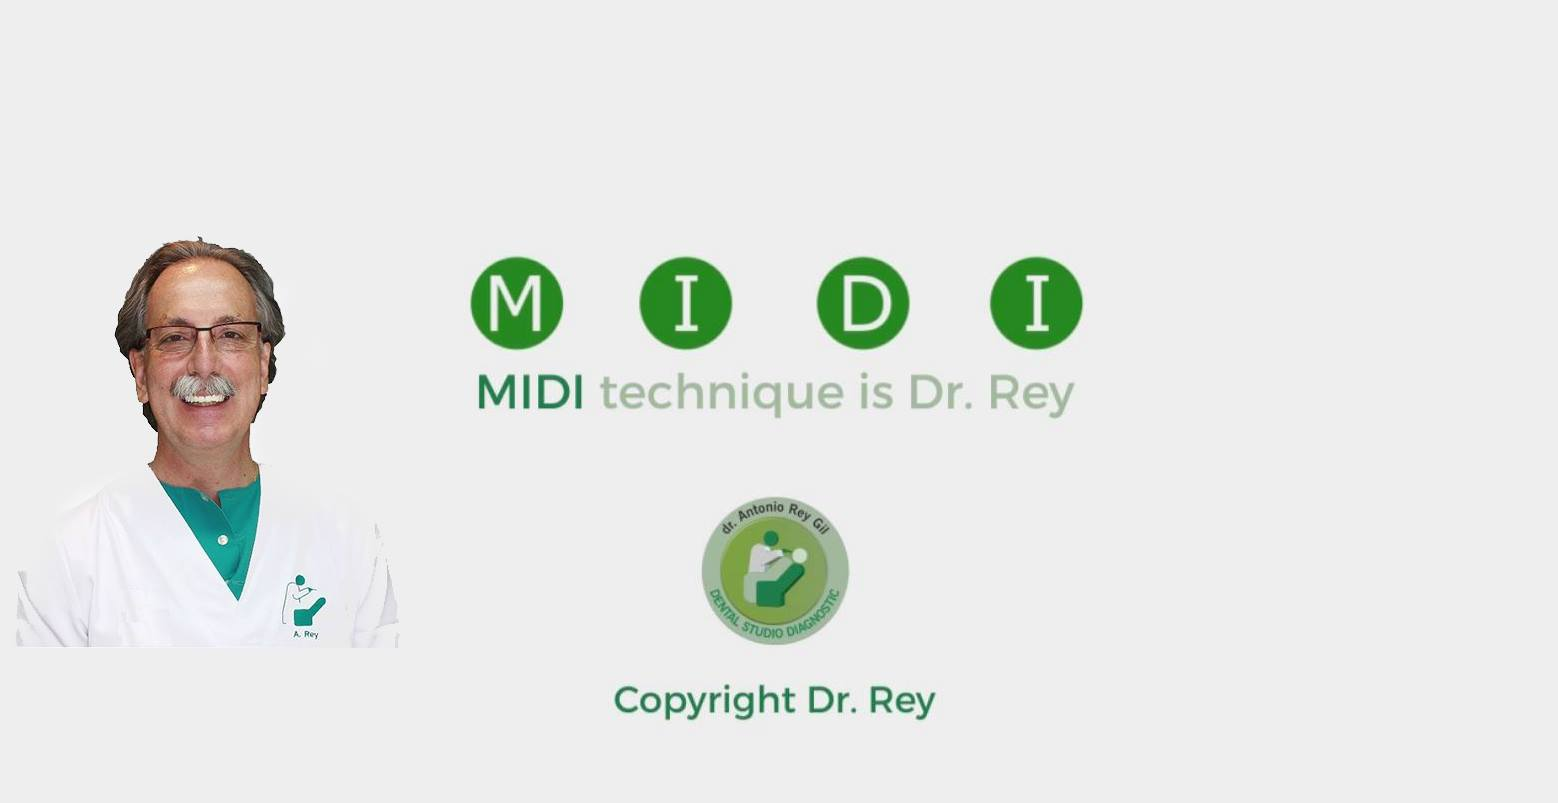 MIDI TECHNIQUE IMPLANT DR REY GIL